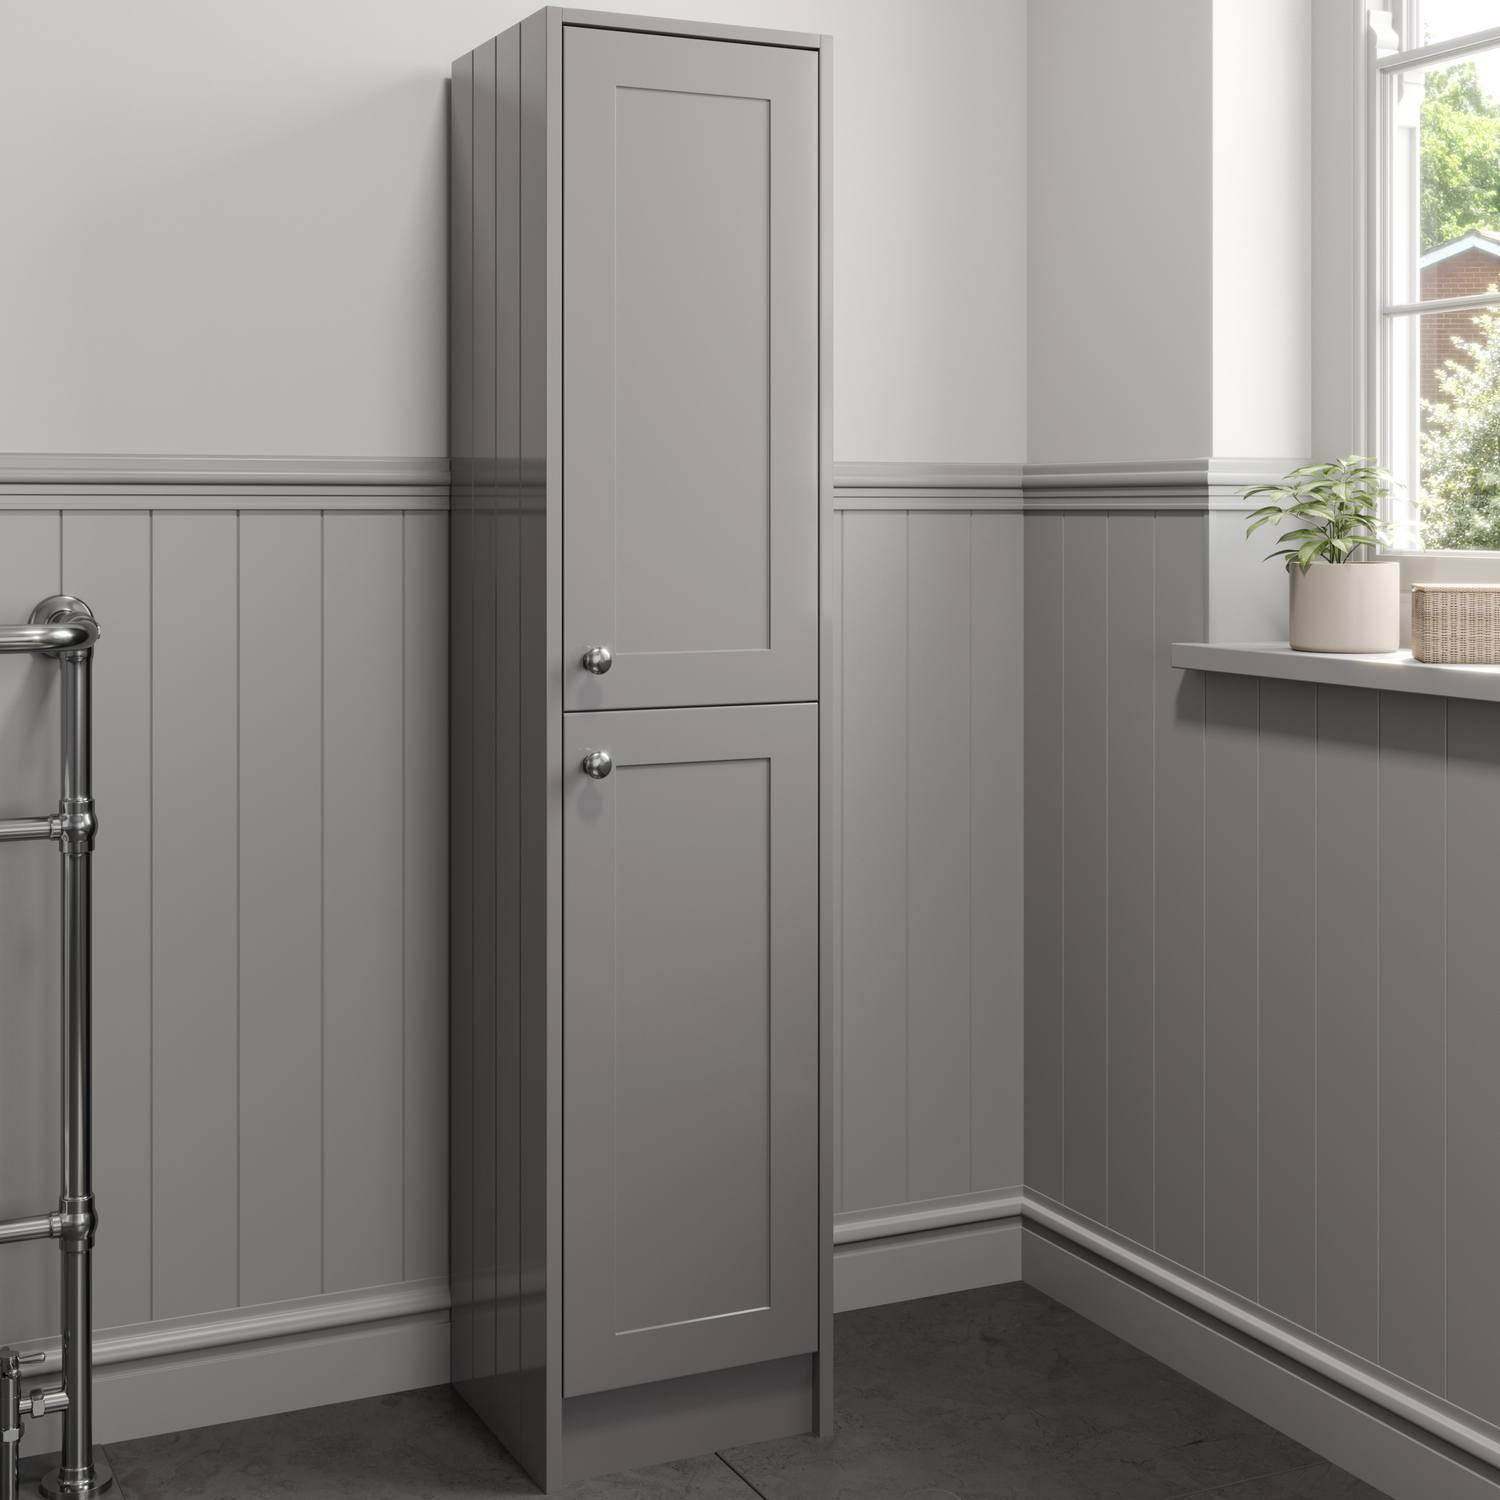 Details About 1600mm Tall Bathroom Storage Cabinet Cupboard Floorstanding Grey Traditional regarding size 1500 X 1500